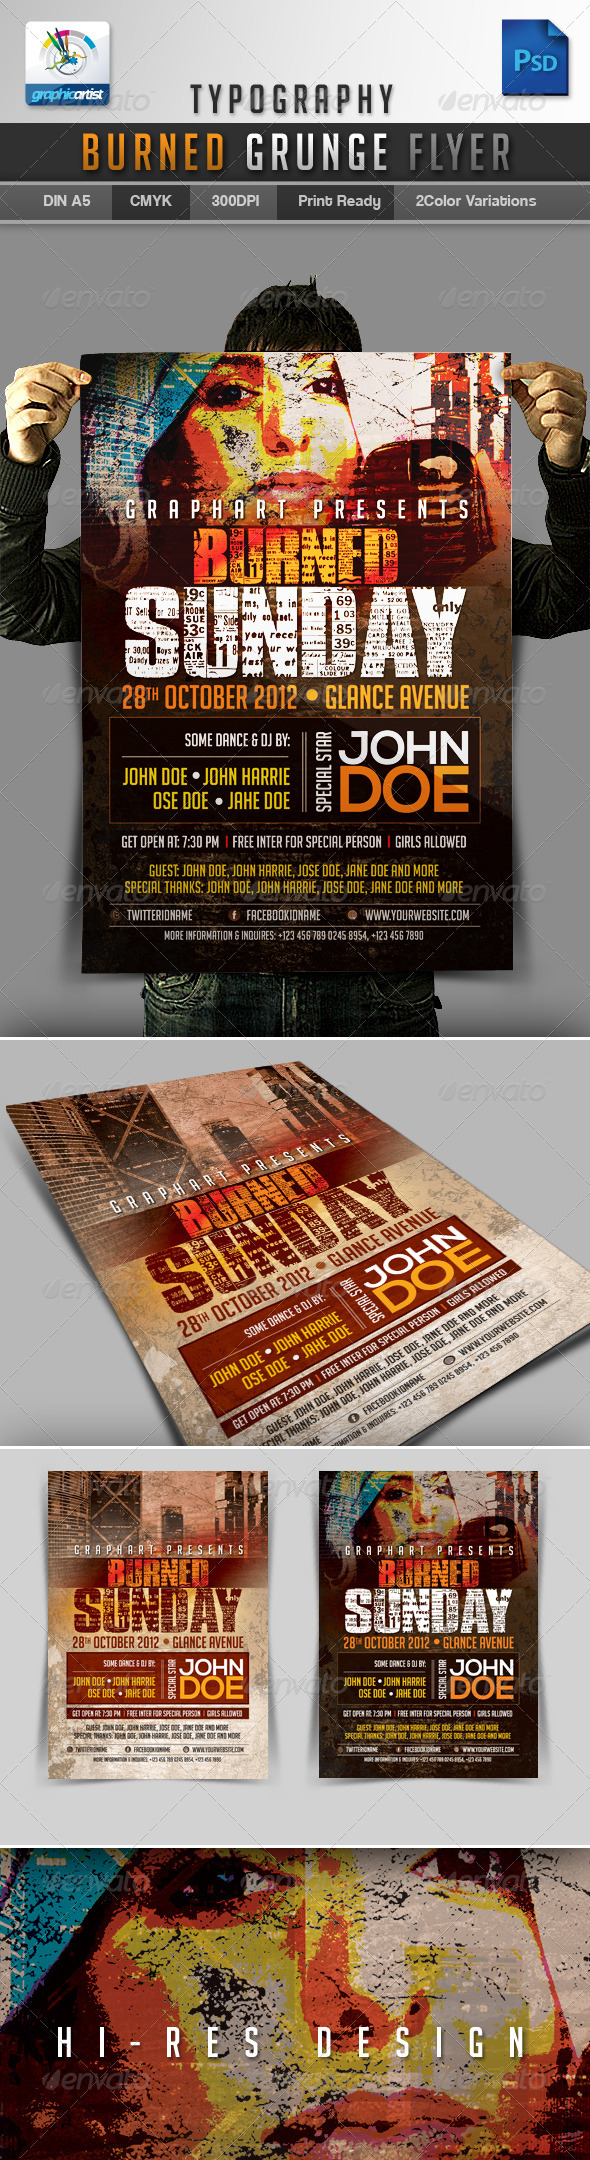 Typography Burned Grunge Flyer - Events Flyers